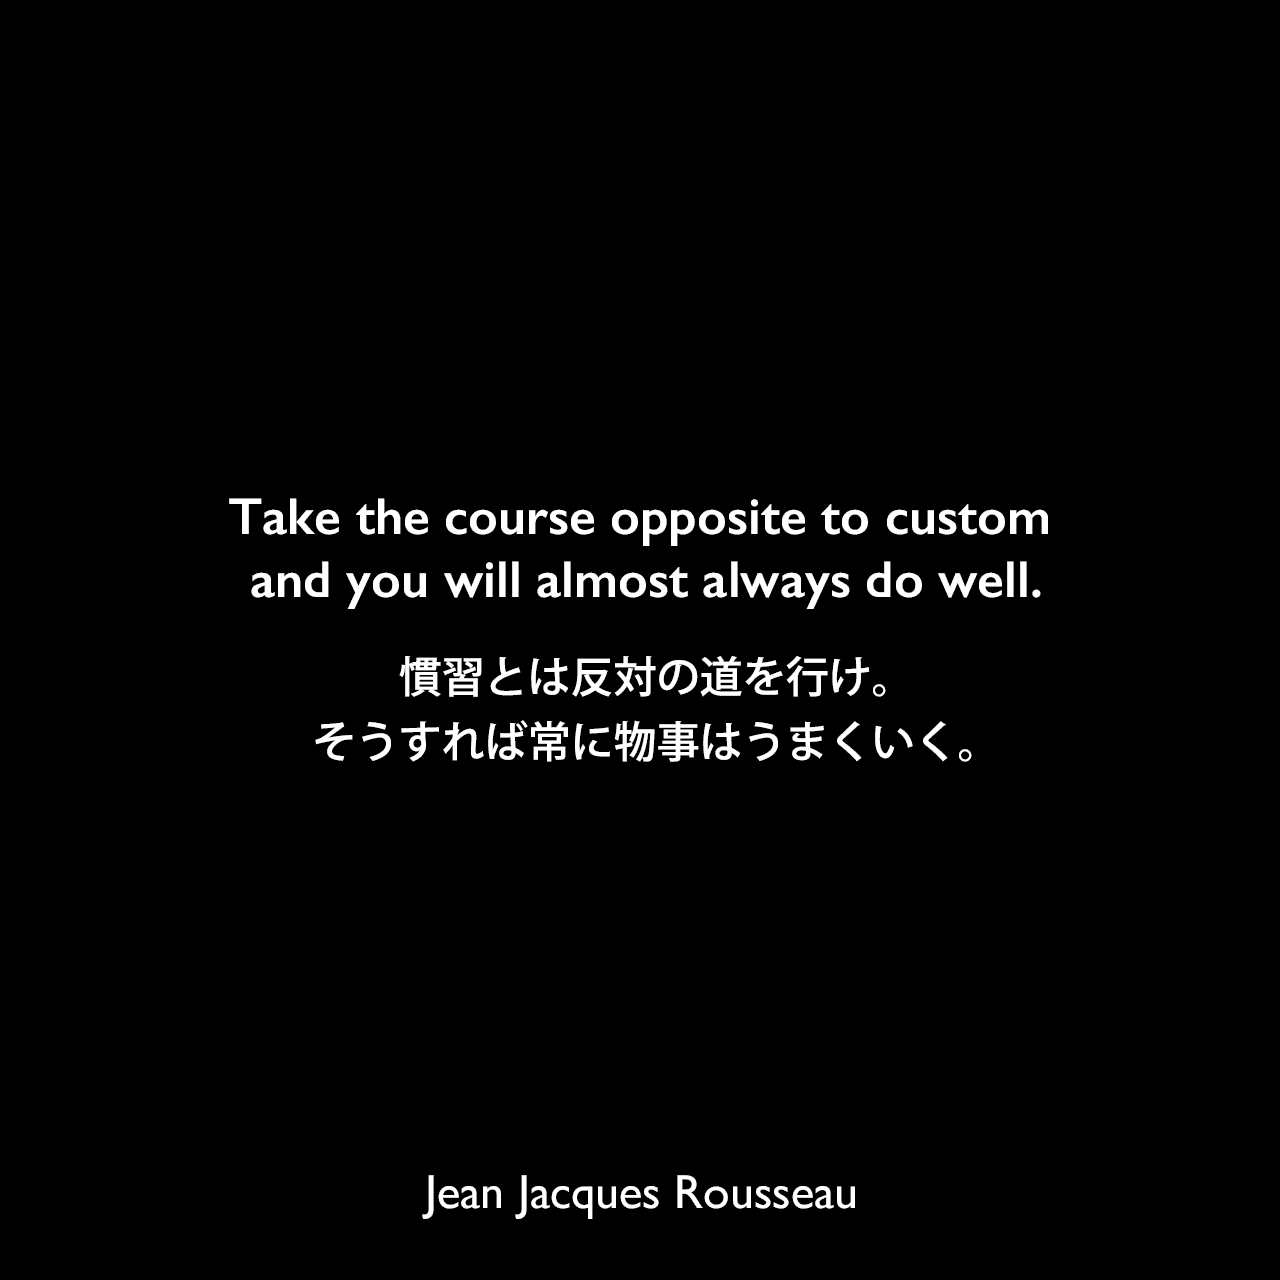 Take the course opposite to custom and you will almost always do well.慣習とは反対の道を行け。そうすれば常に物事はうまくいく。